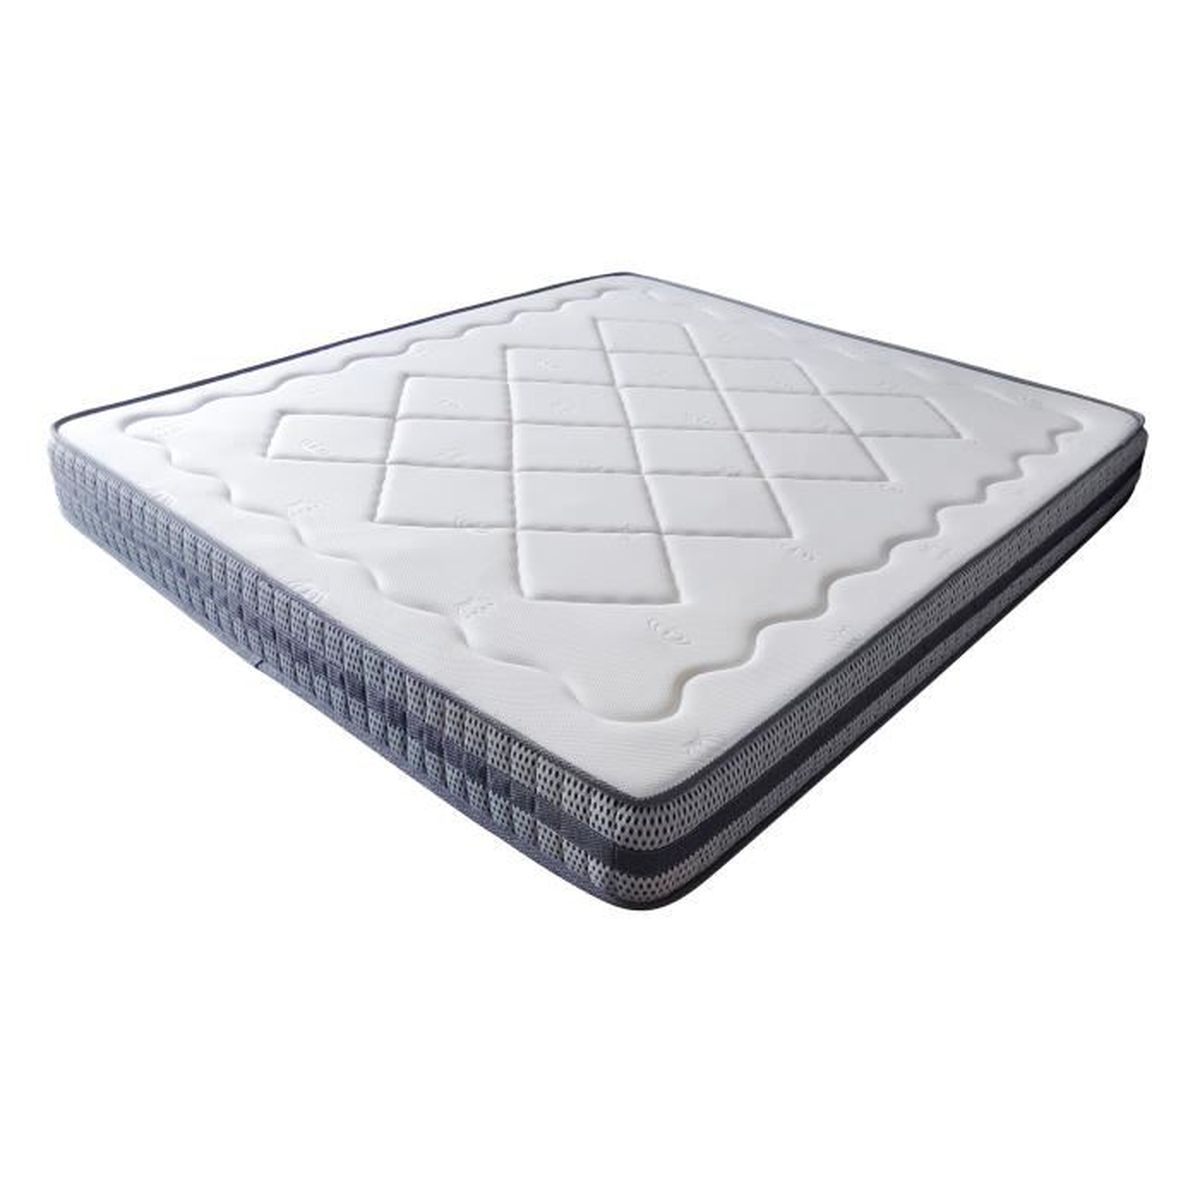 okda matelas m moire de forme 180x200 cm achat vente matelas cdiscount. Black Bedroom Furniture Sets. Home Design Ideas